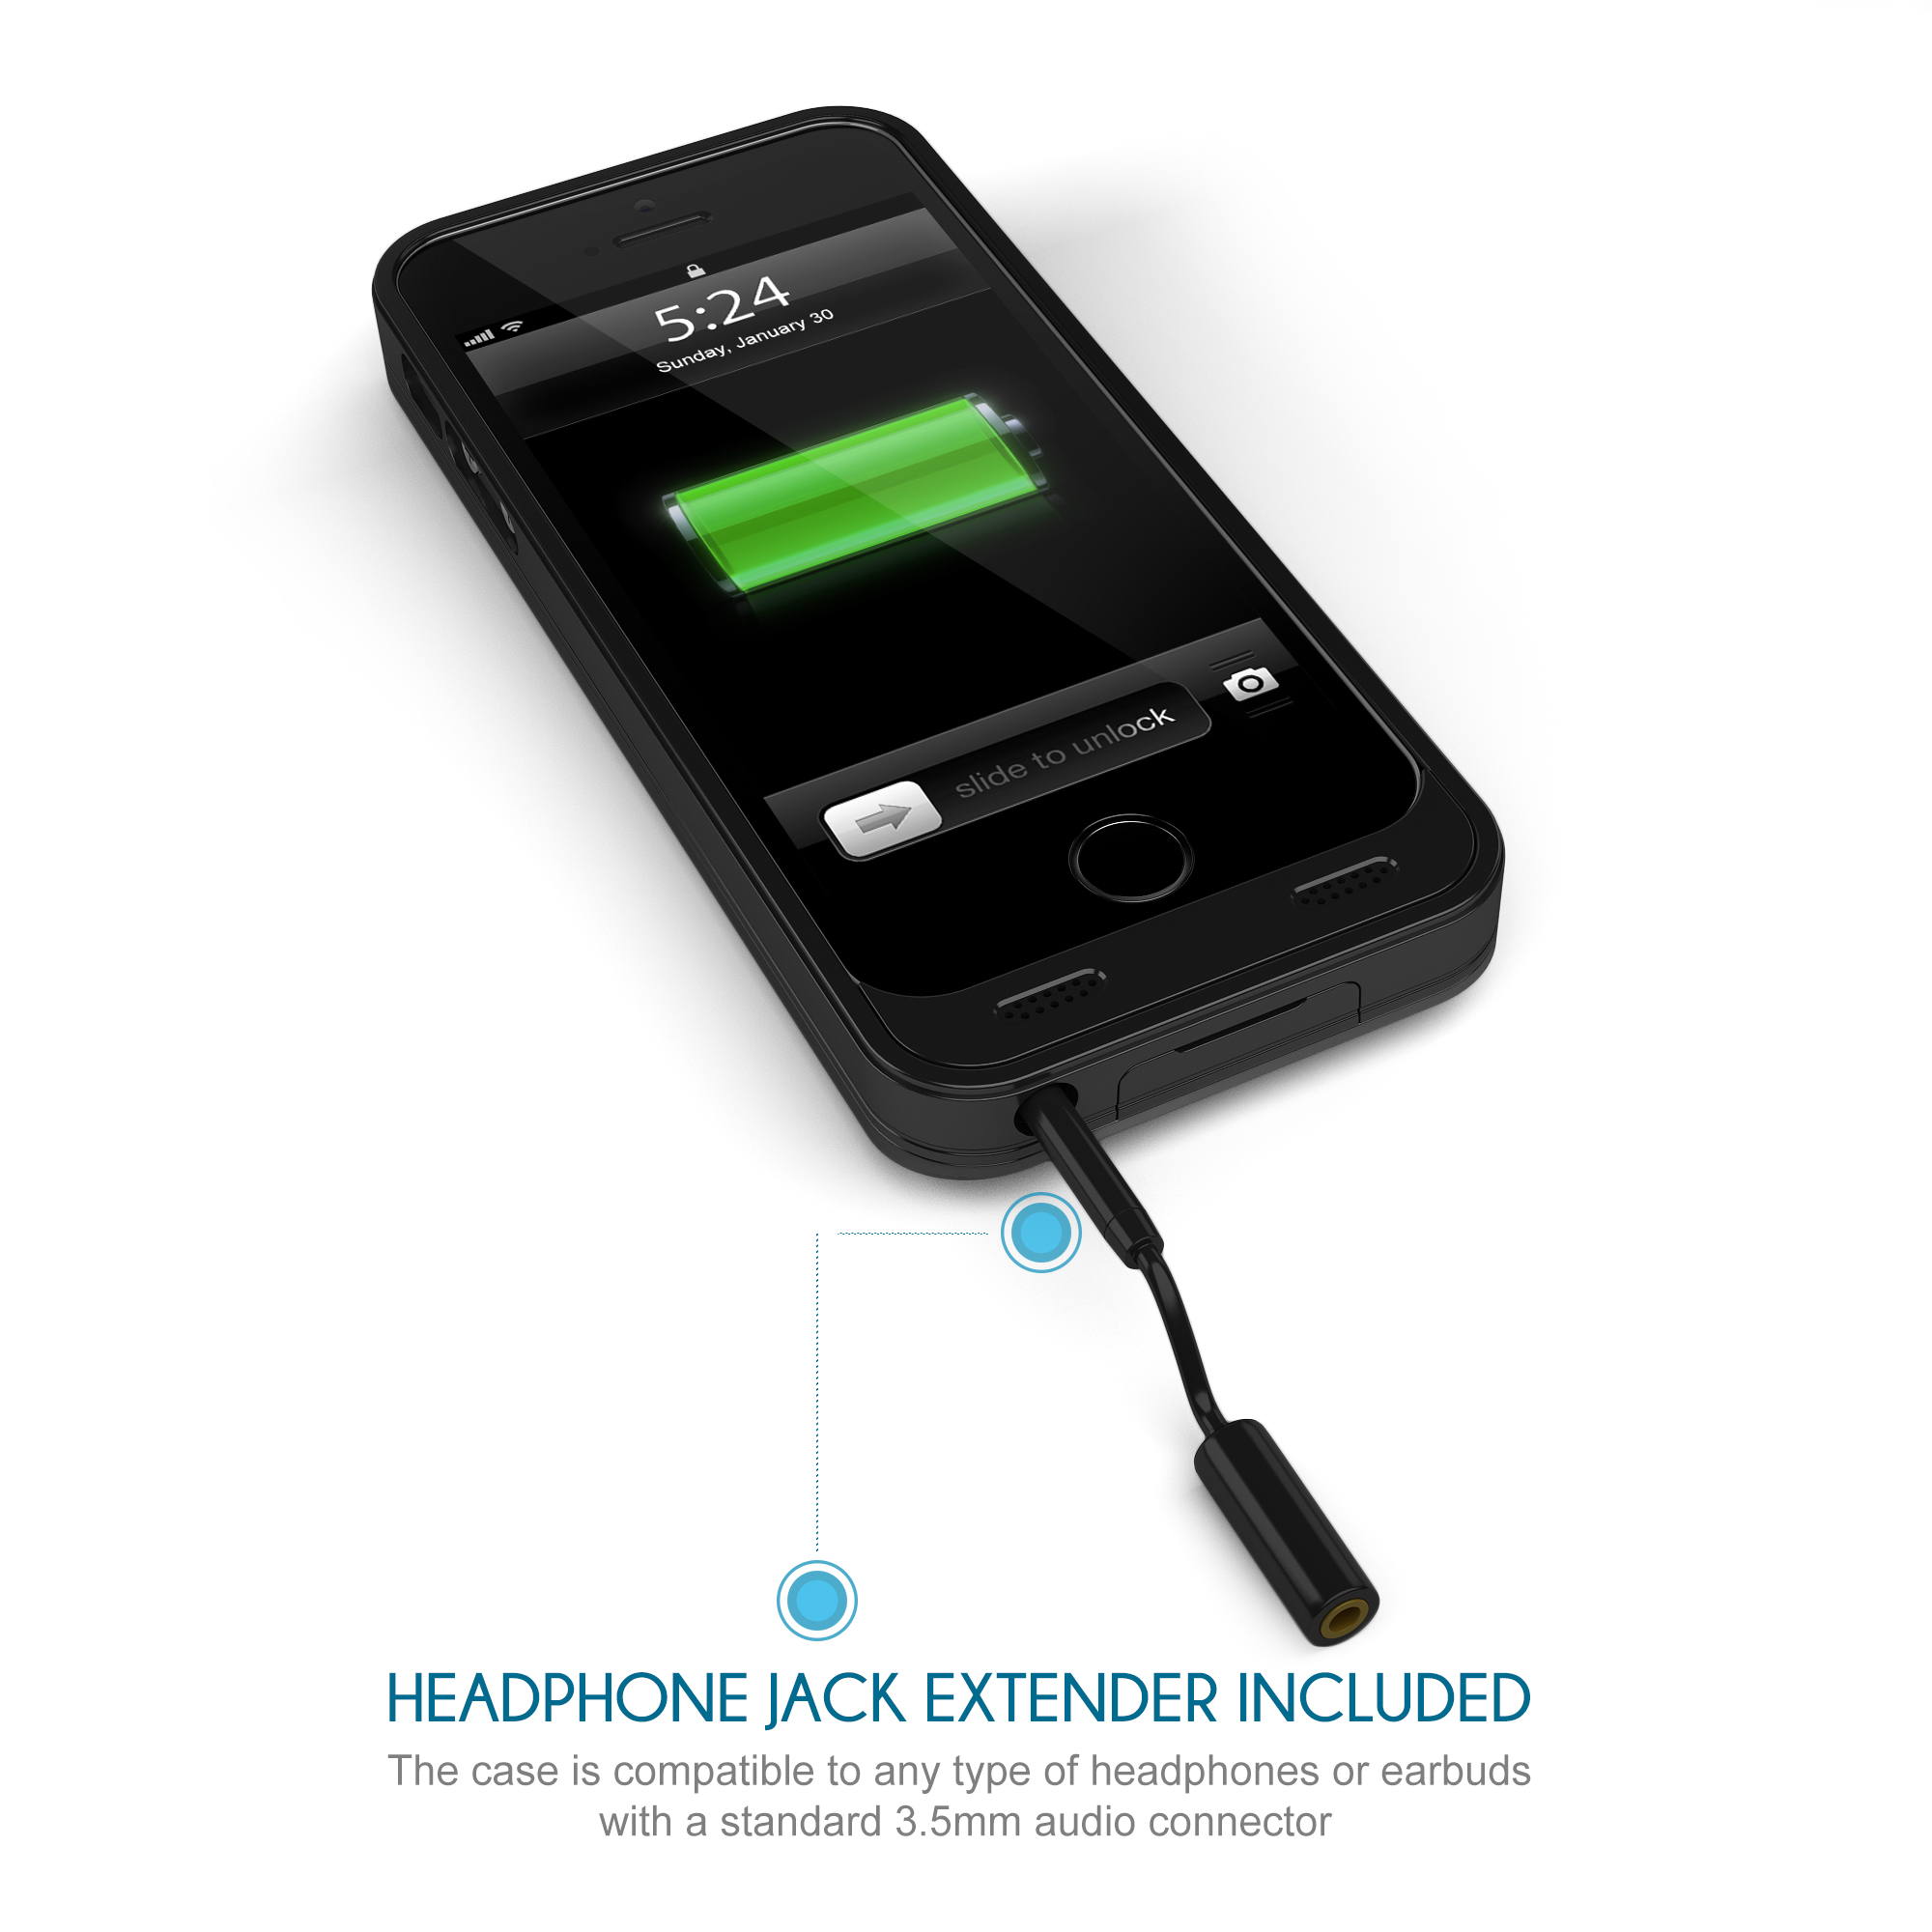 stalion stamina 2400mah extended rechargeable battery case for iphone 5 5s se ebay. Black Bedroom Furniture Sets. Home Design Ideas